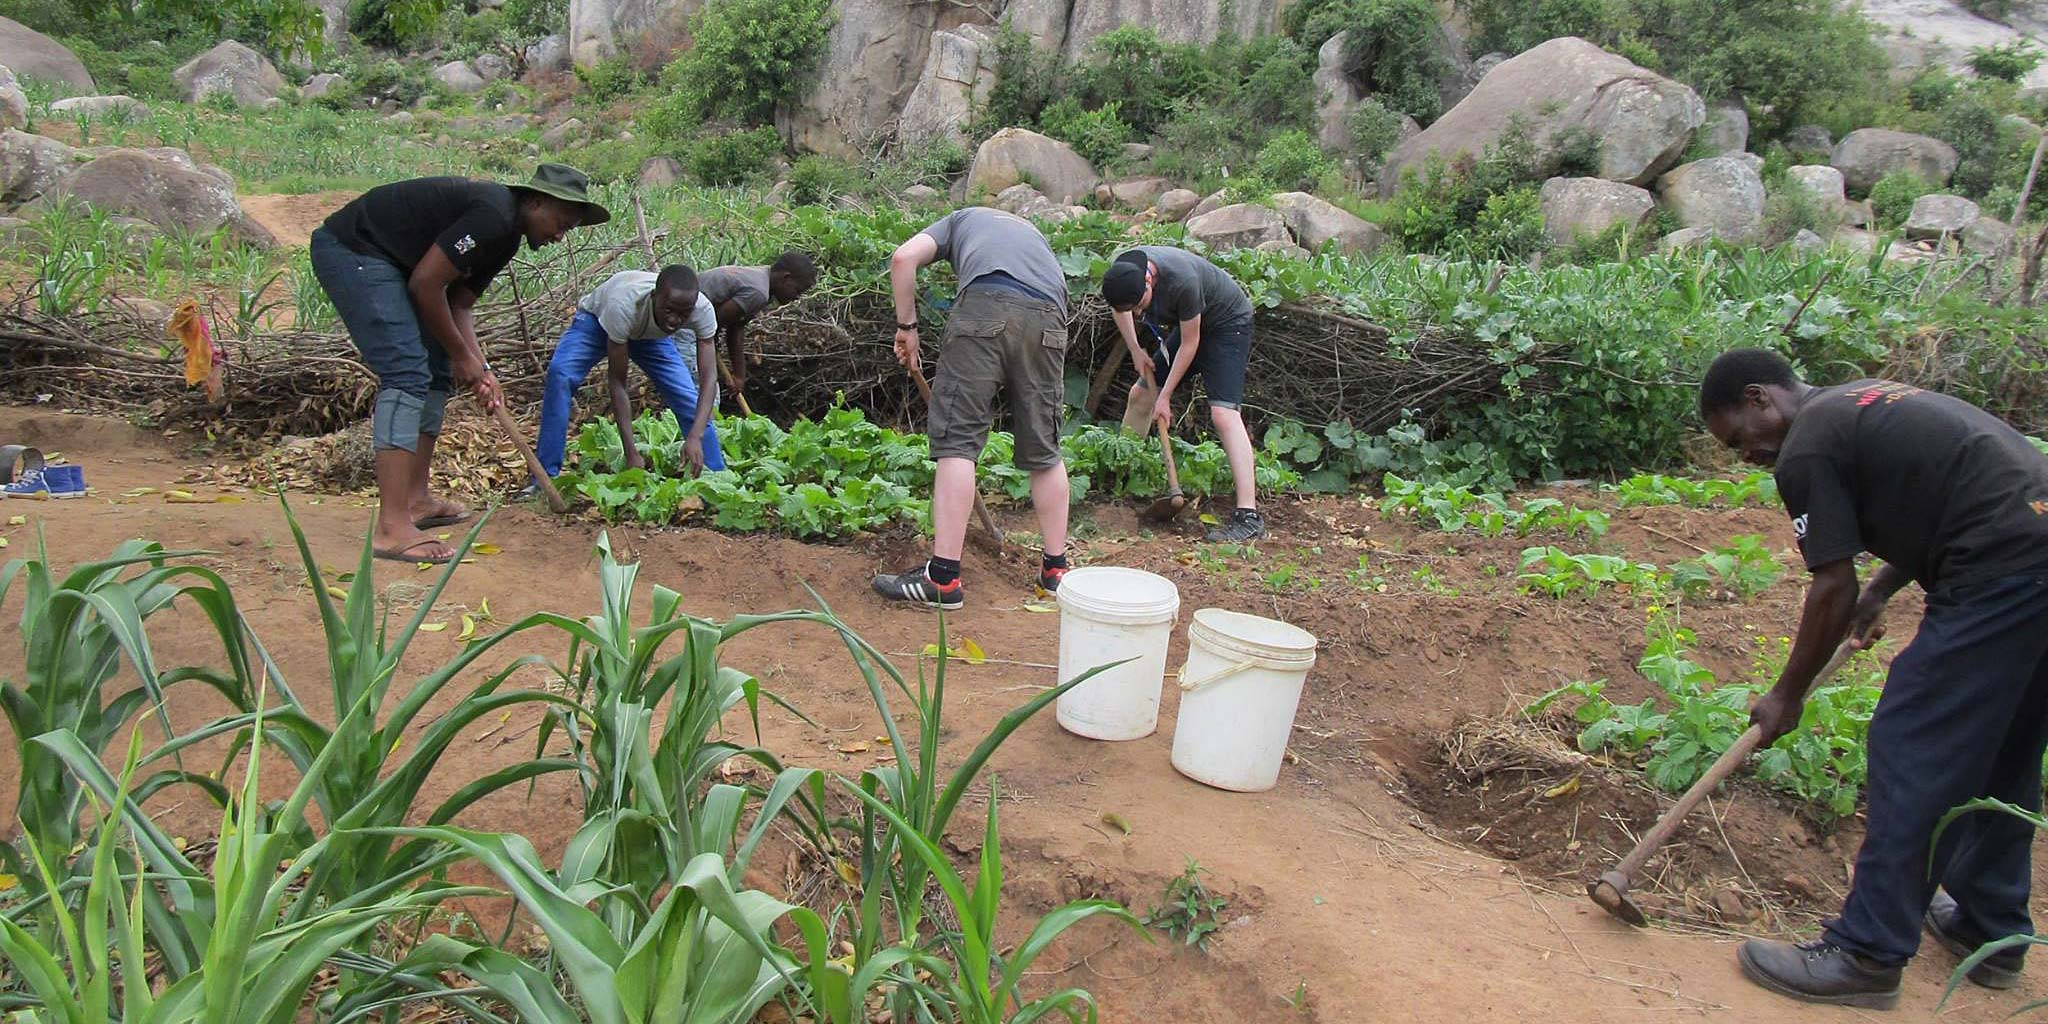 Weeding the maize field during the session